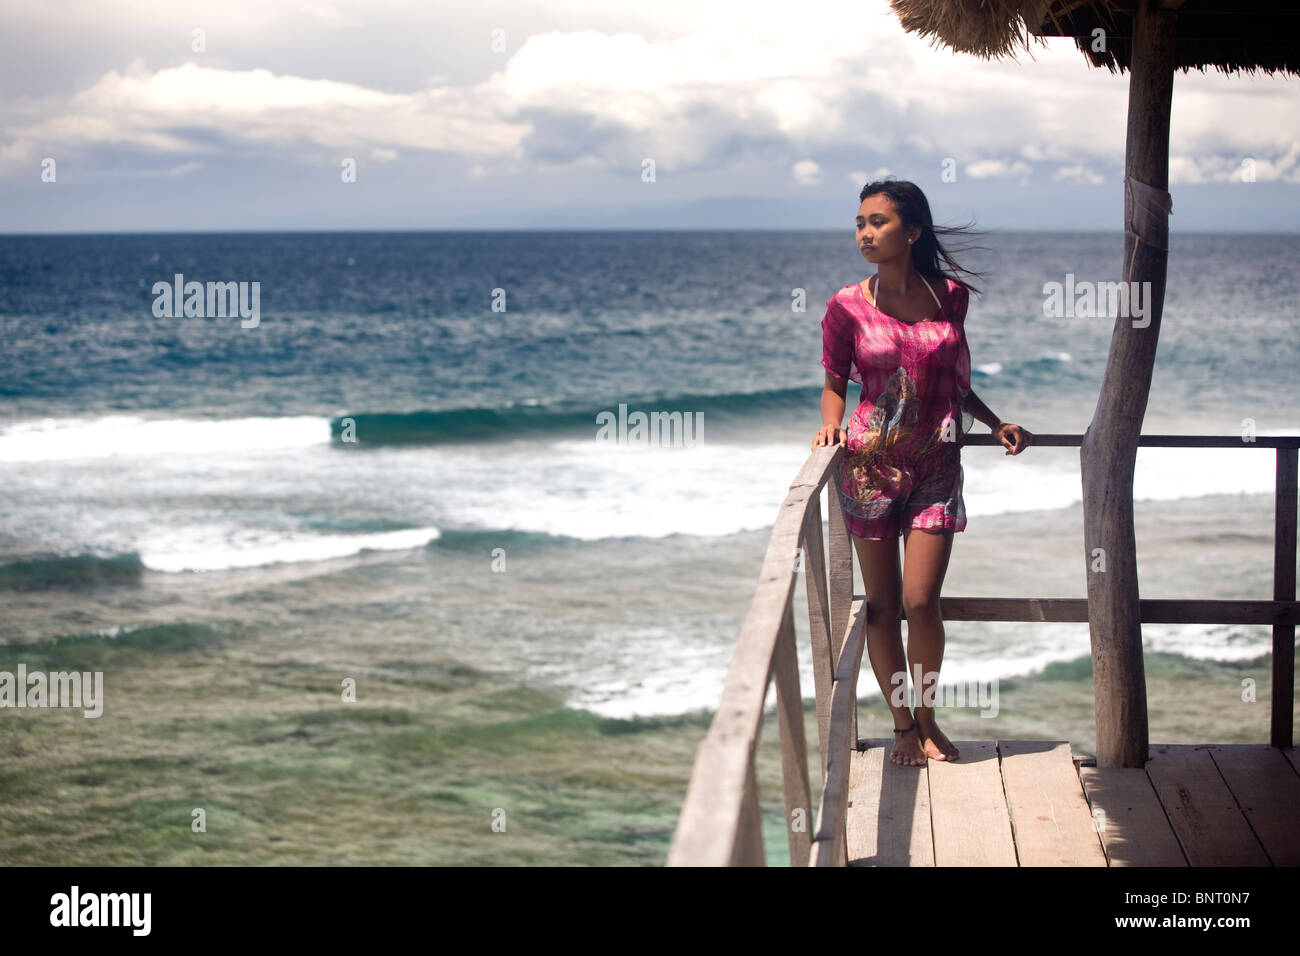 Young women in pink dress above tropical beach. - Stock Image